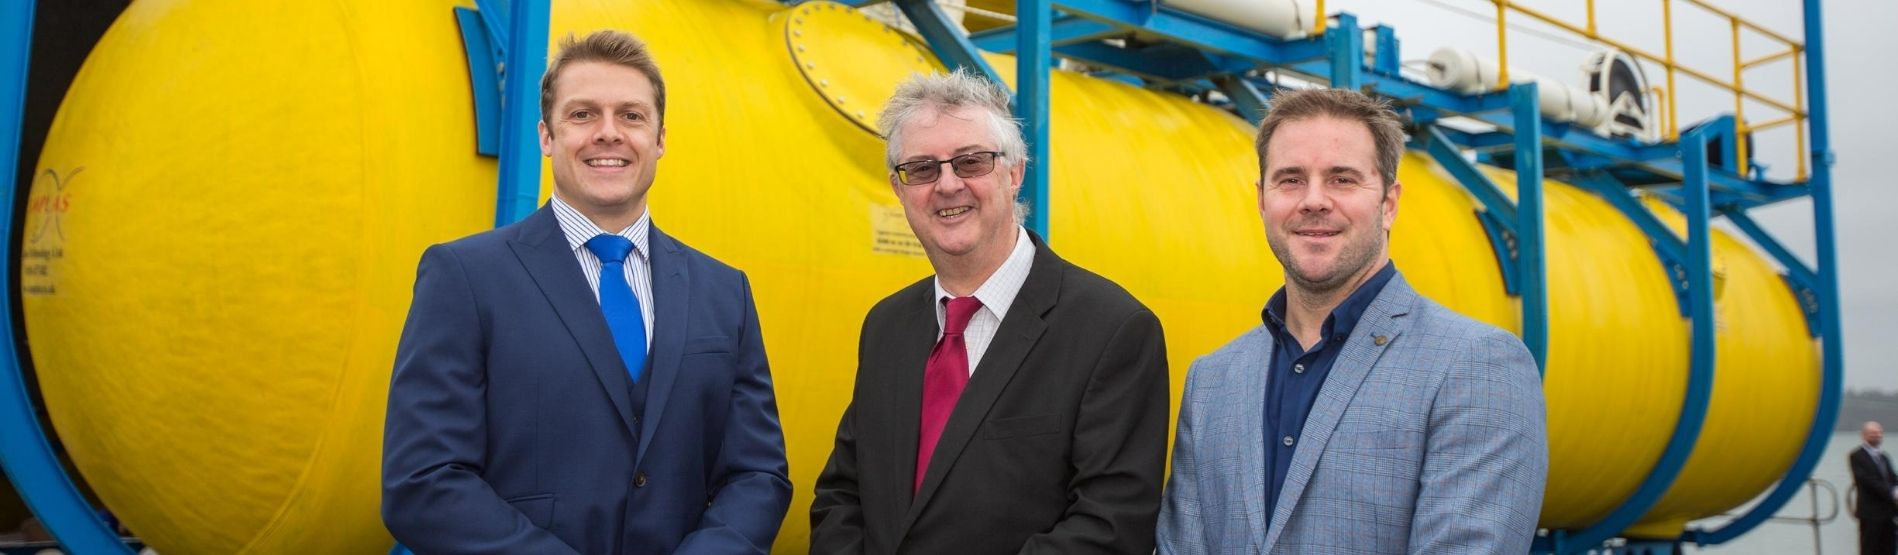 Dr Gareth Stockman, Mark Drakeford (First Minister of Wales) and Dr Graham Foster standing in front of the Wave Sub.